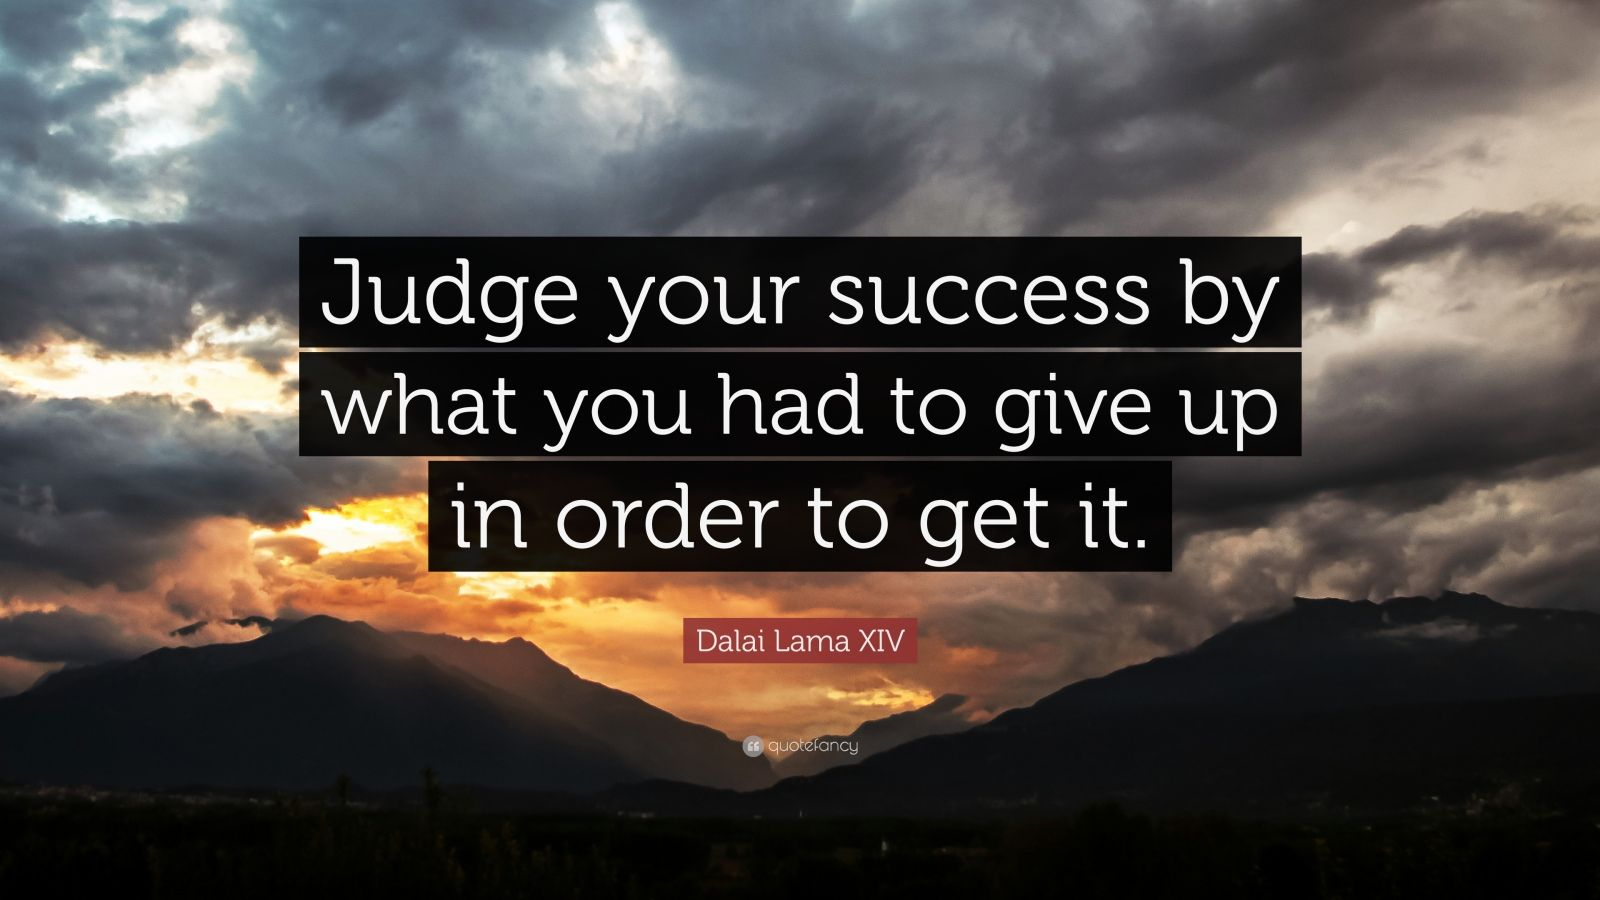 """Dalai Lama XIV Quote: """"Judge your success by what you had to give up in order to get it."""""""